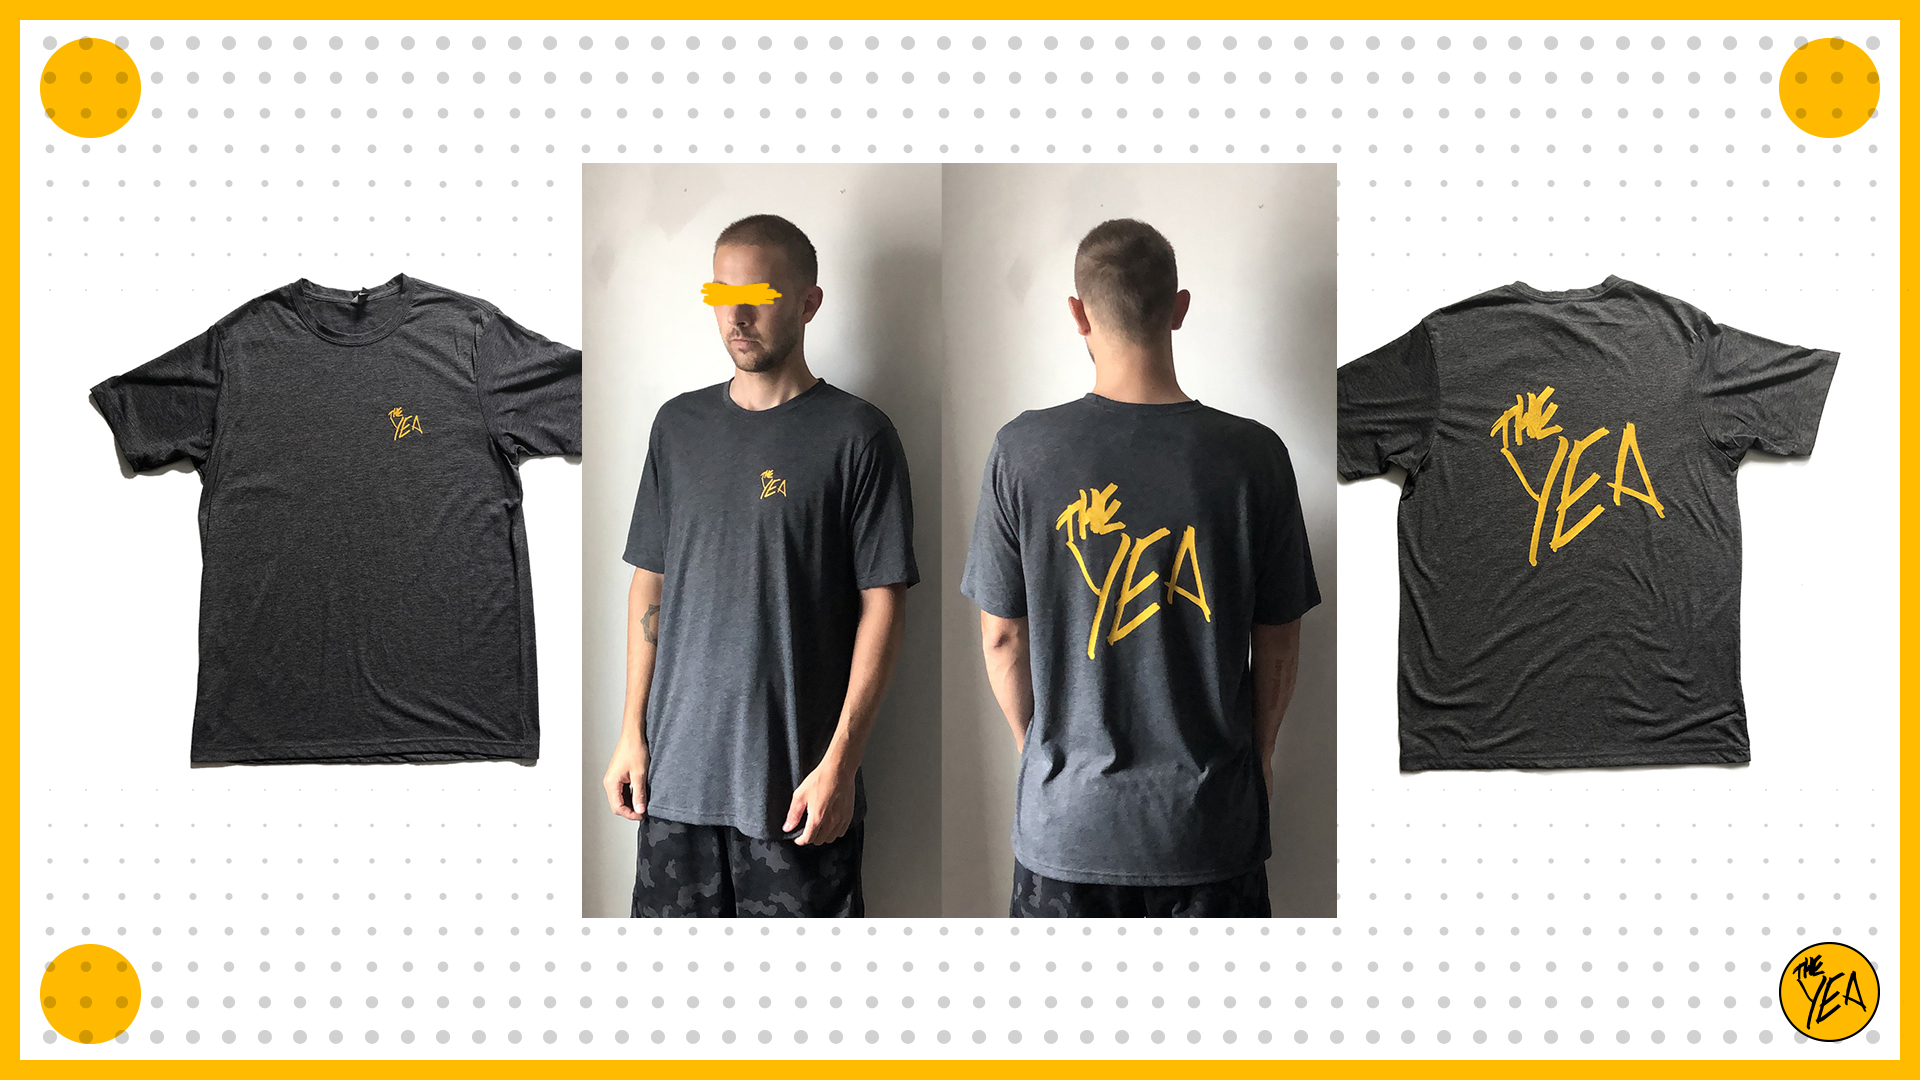 The Yea BMX Tee Shirt